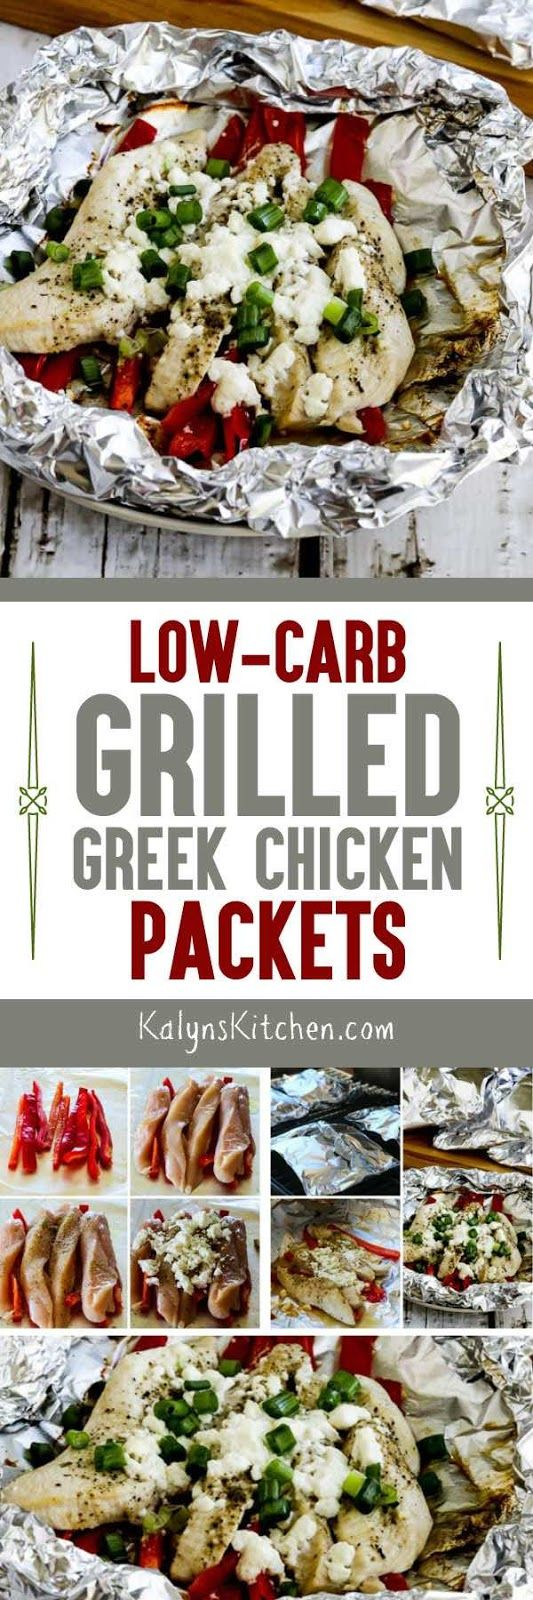 Low-Carb Grilled Greek Chicken Packets cook on the grill in about 15 minutes, and this is as easy as it is delicious! The recipe is also Keto, low-glycemic, gluten-free, and South Beach Diet friendly. [found on KalynsKitchen.com]